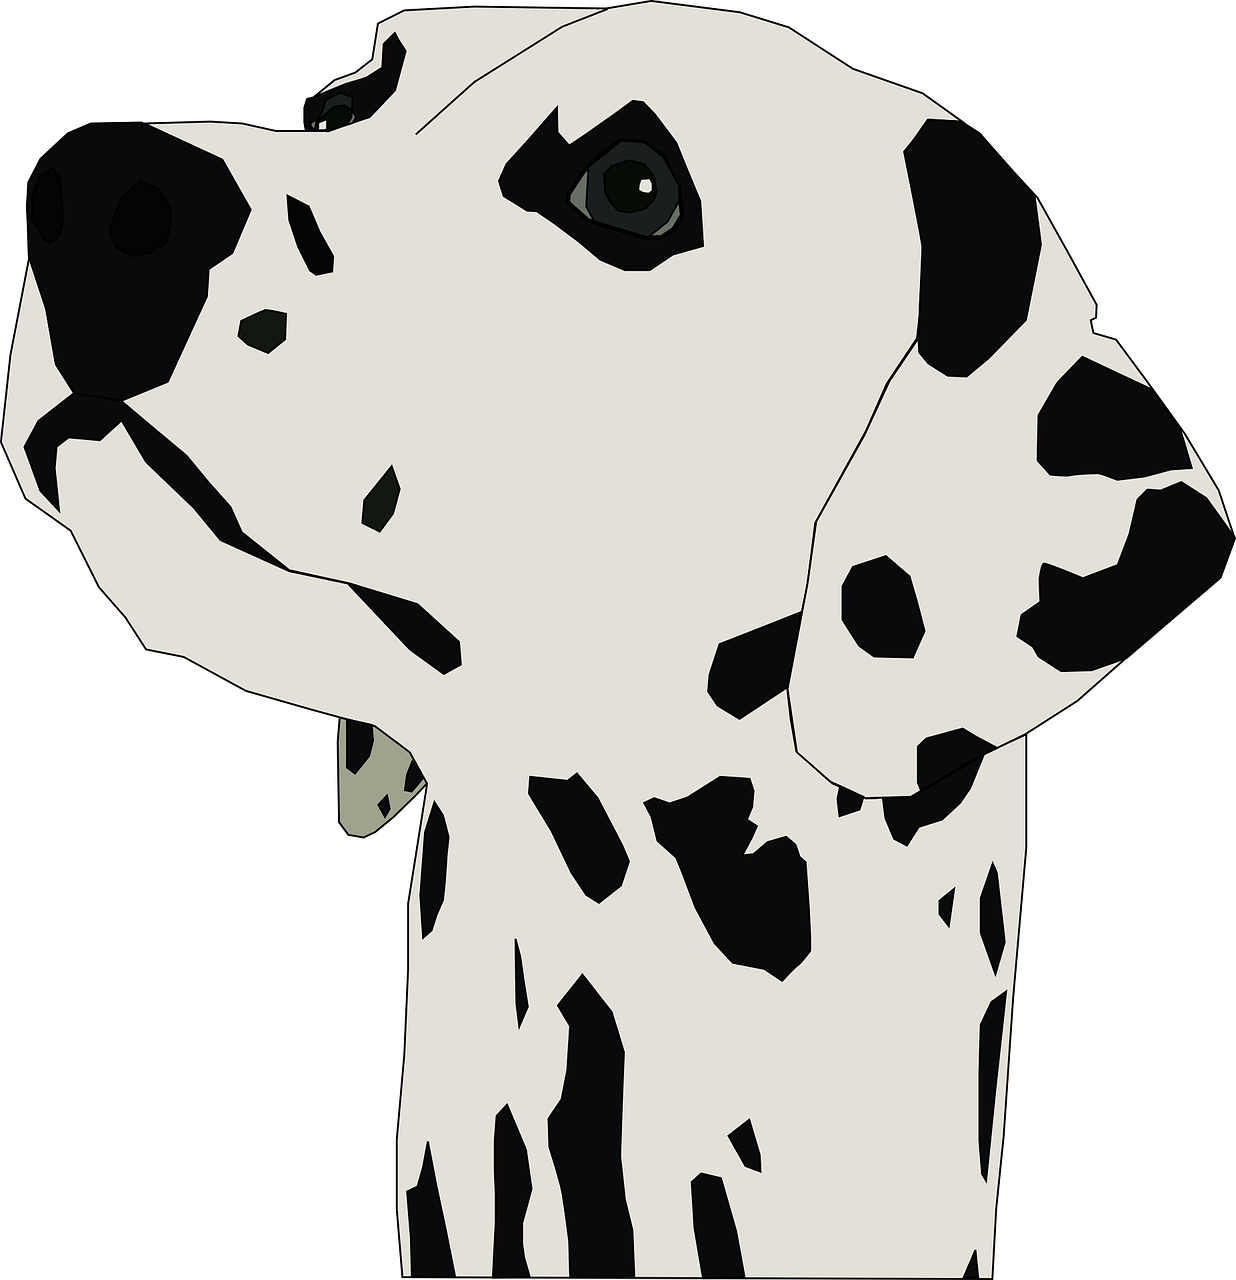 dalmatian dog breed free photo